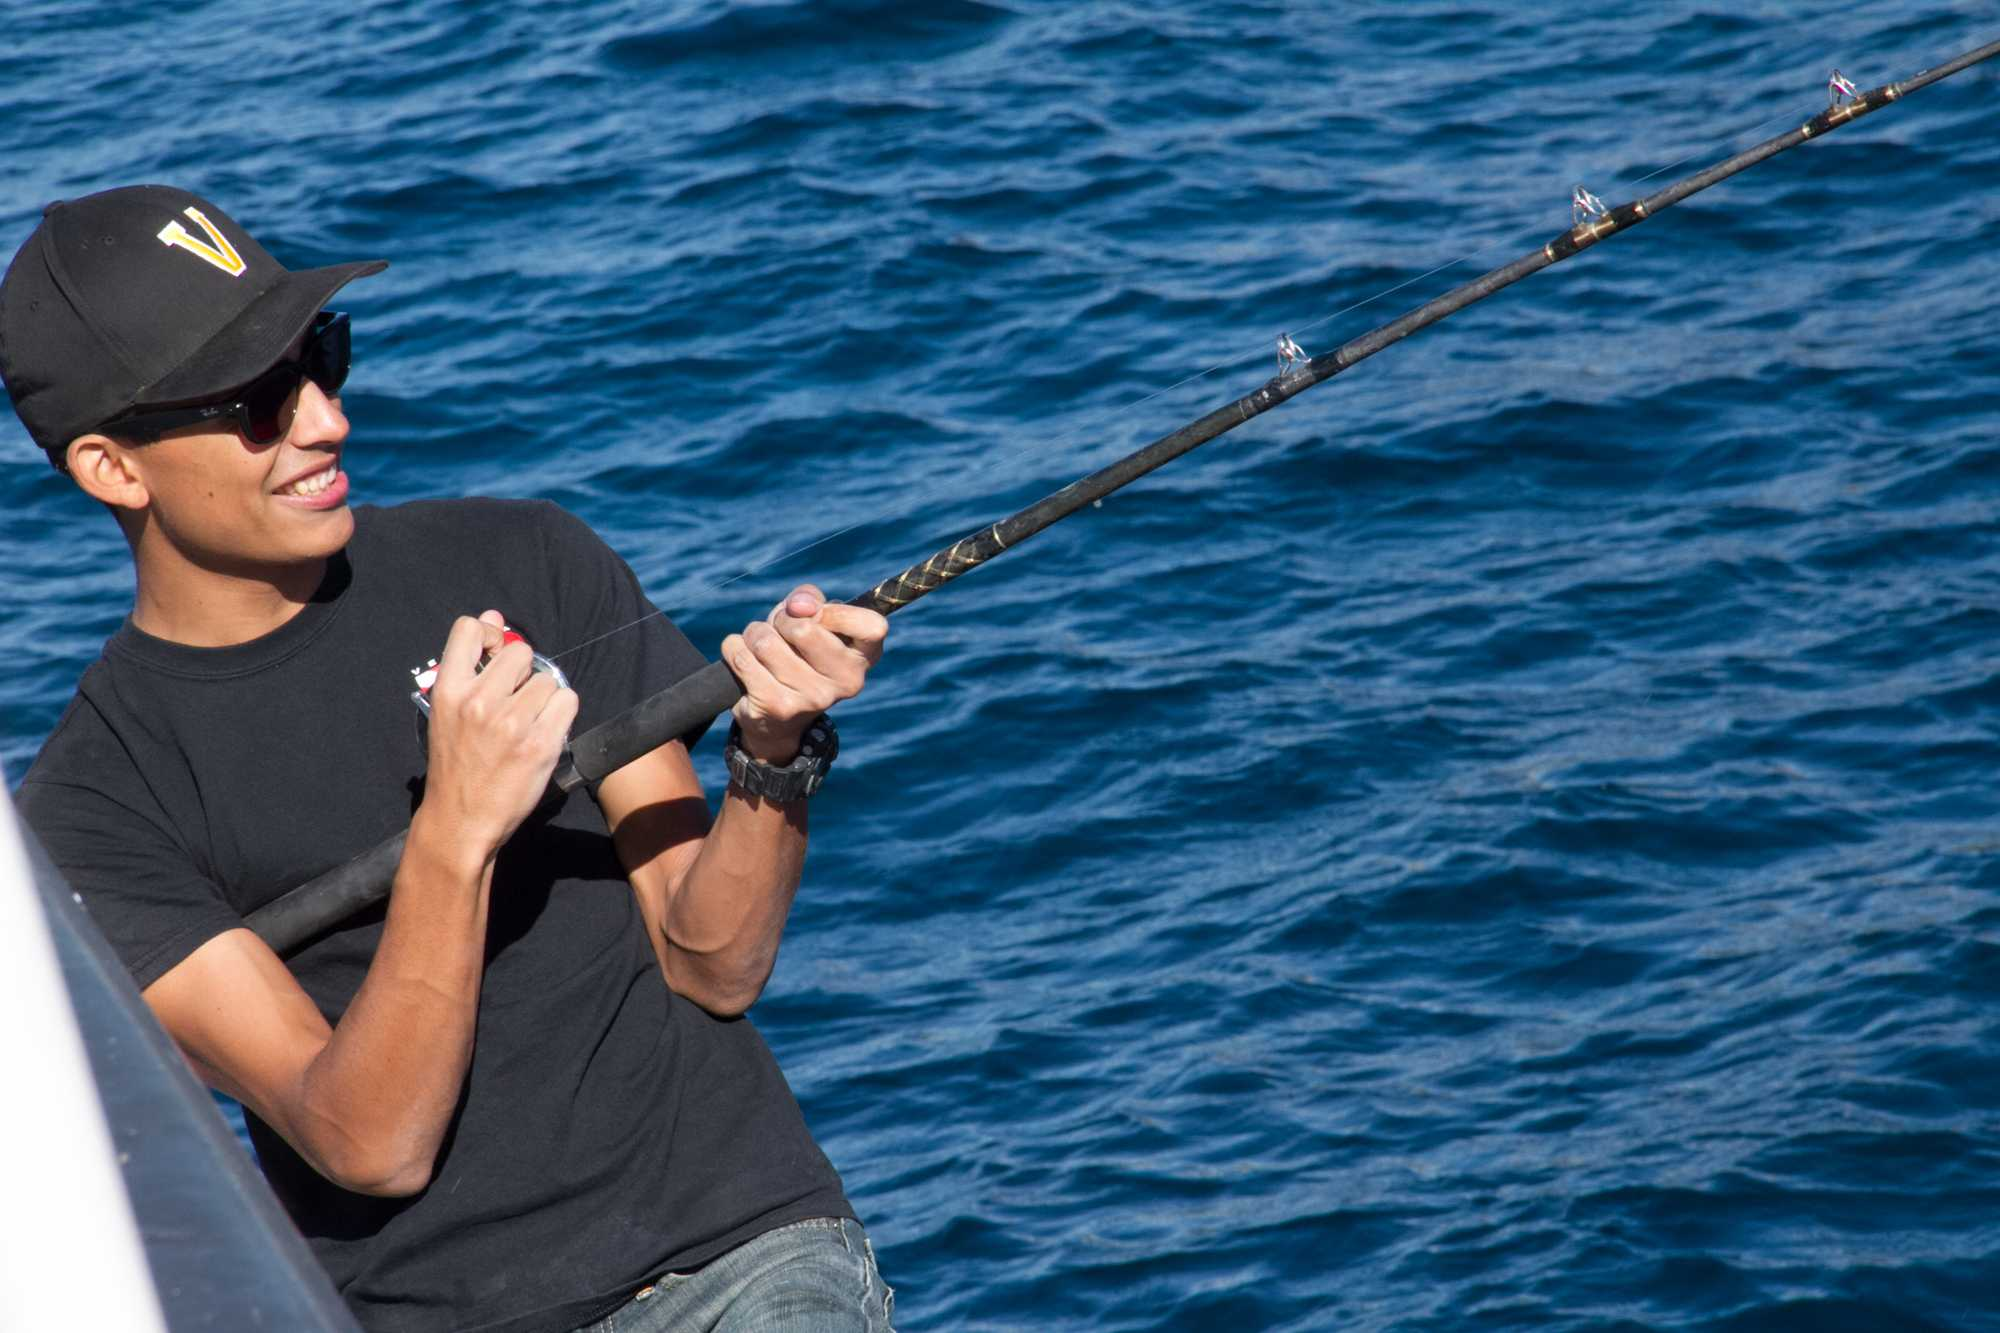 Senior and BioScience member Carlos Cohen reeling in his catch, November 24, 2014. Credit: Johnathan Carriger/The Foothill Dragon Press